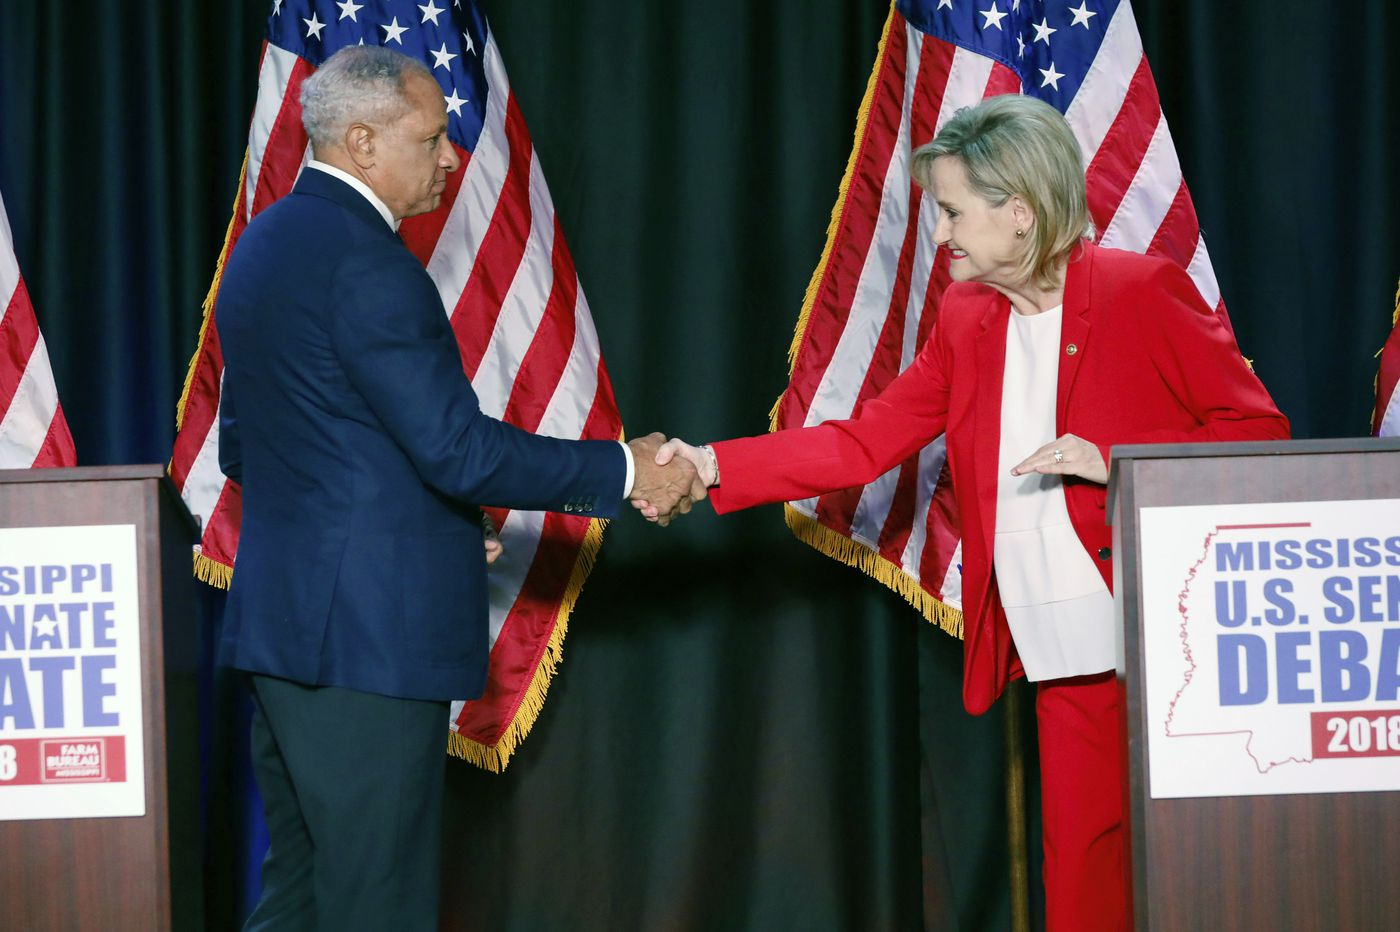 Democrats push to mobilize black voters in Mississippi Senate runoff between Cindy Hyde-Smith and Mike Espy